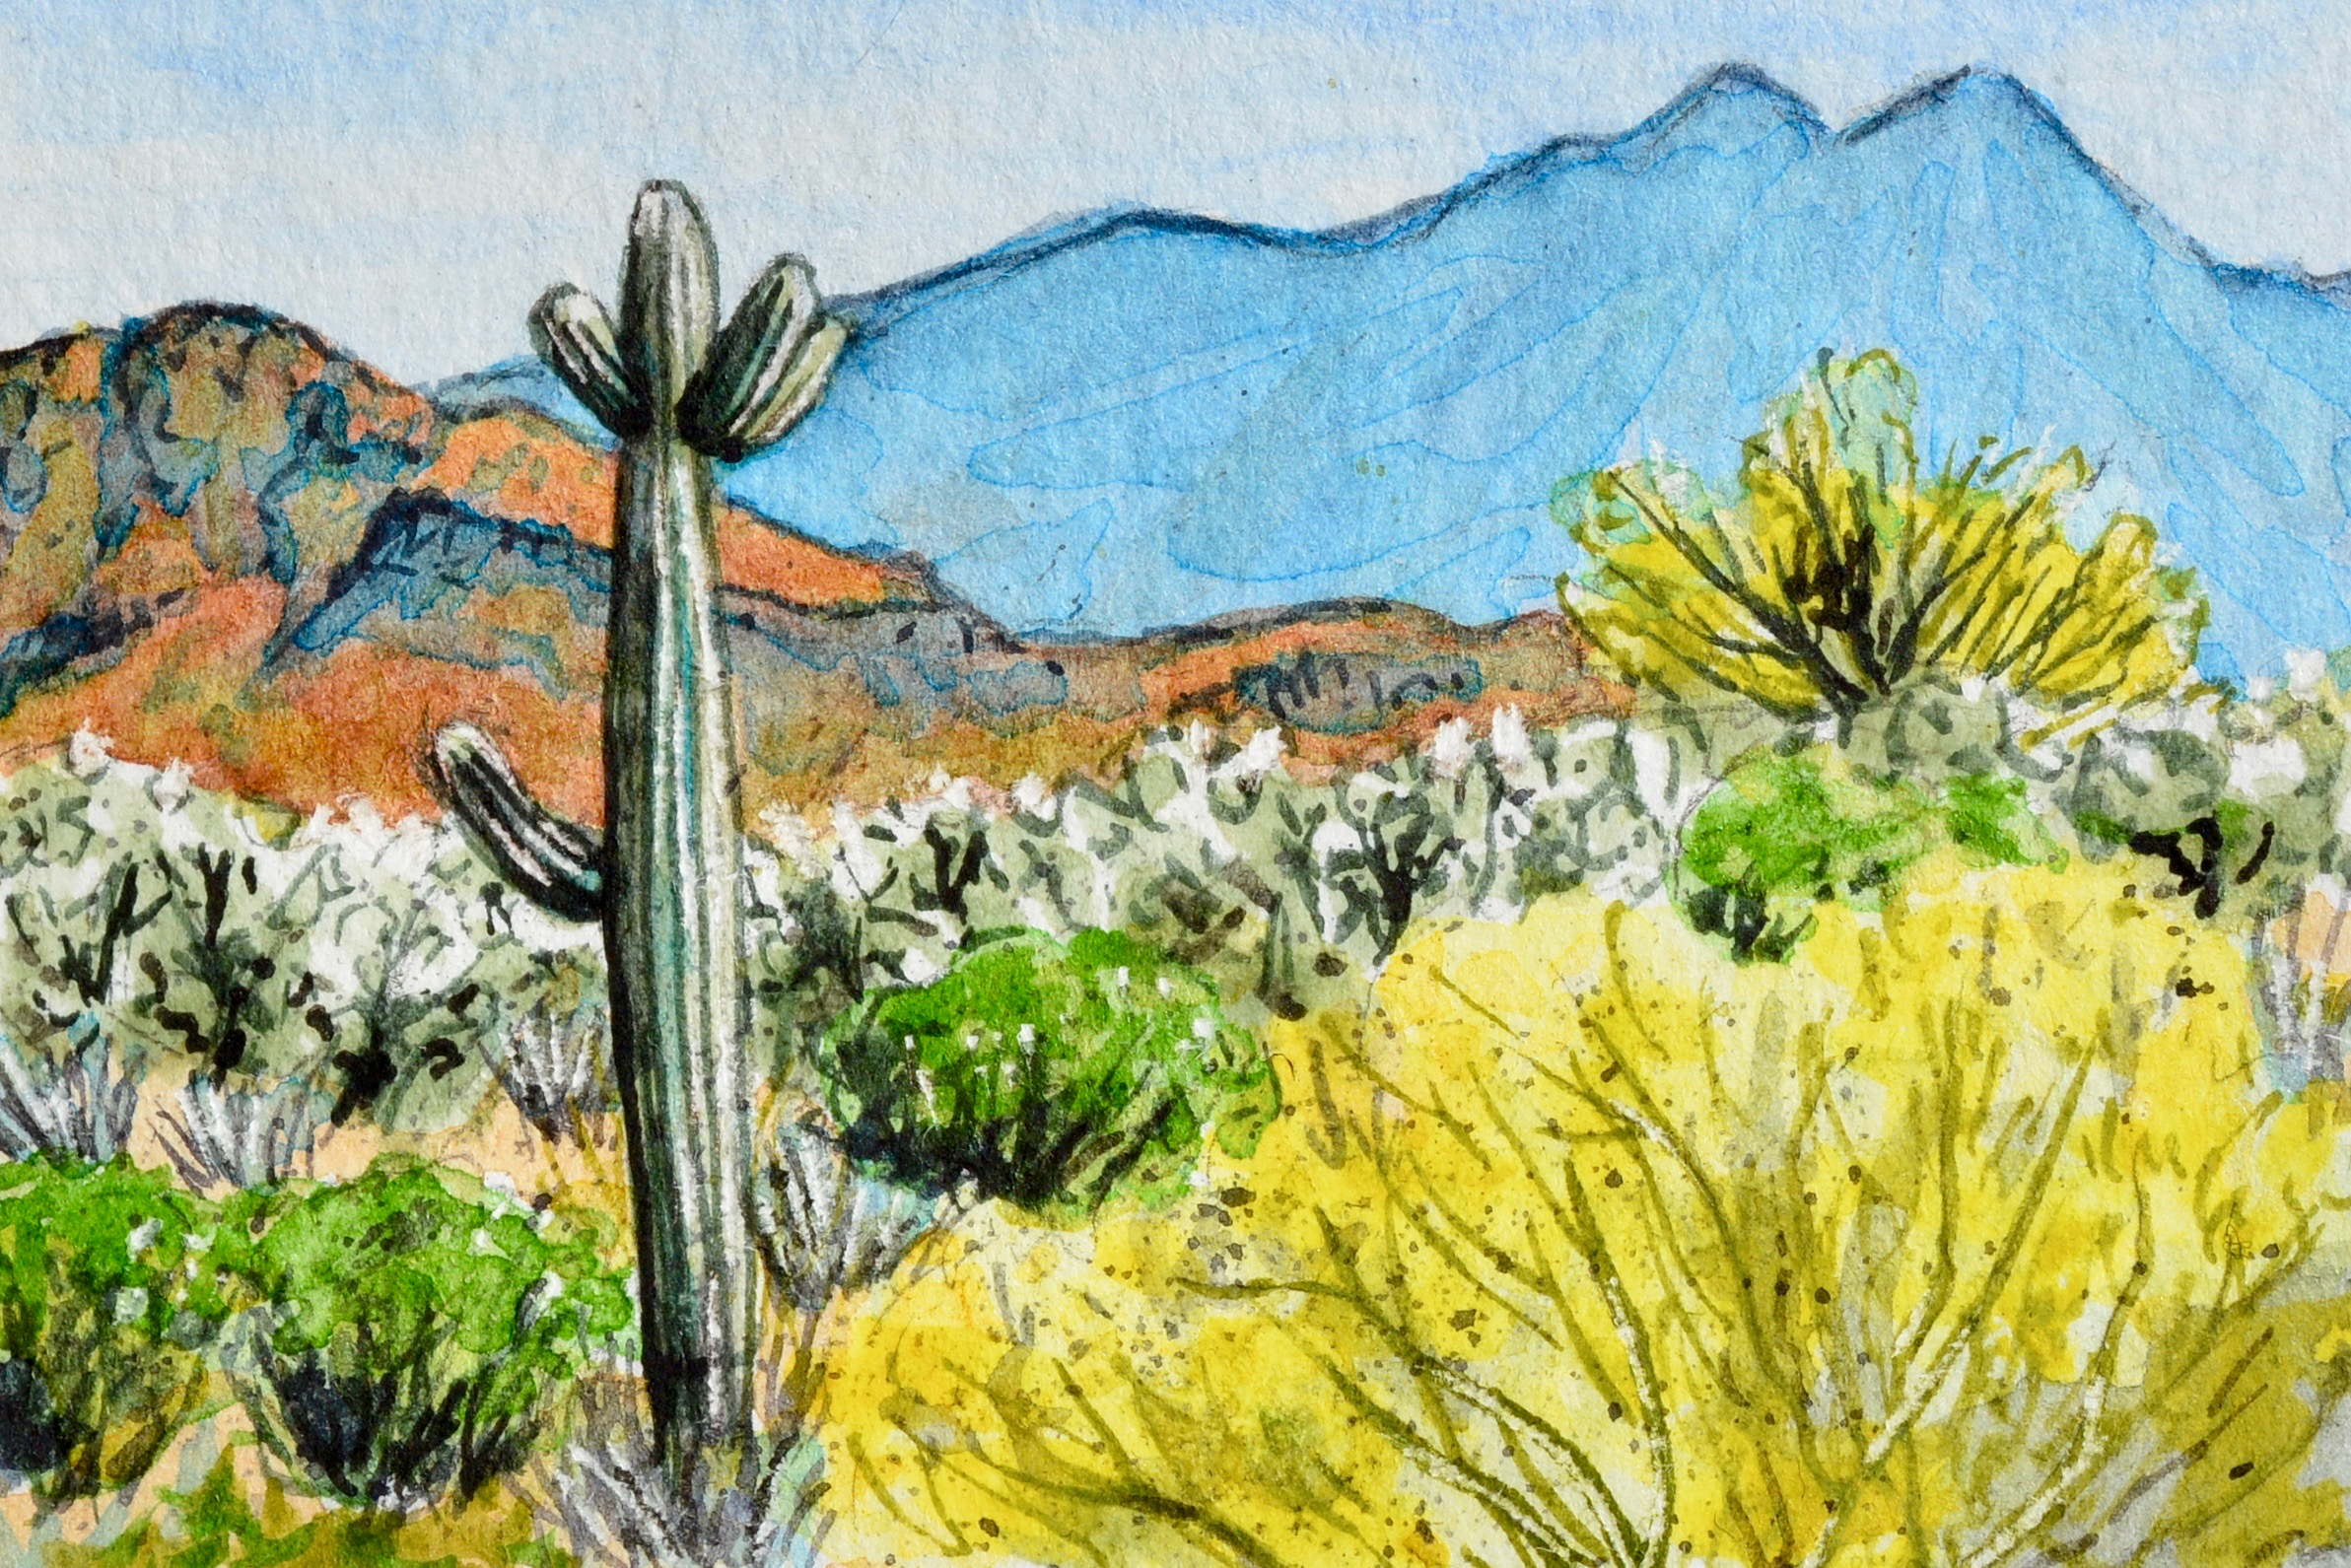 """Superior, Arizona: 5/10/19, 10:30:06"" 3x2"" watercolor on 140 lb. watercolor paper For sale as of this blog posting -  visit my online shop  to purchase."